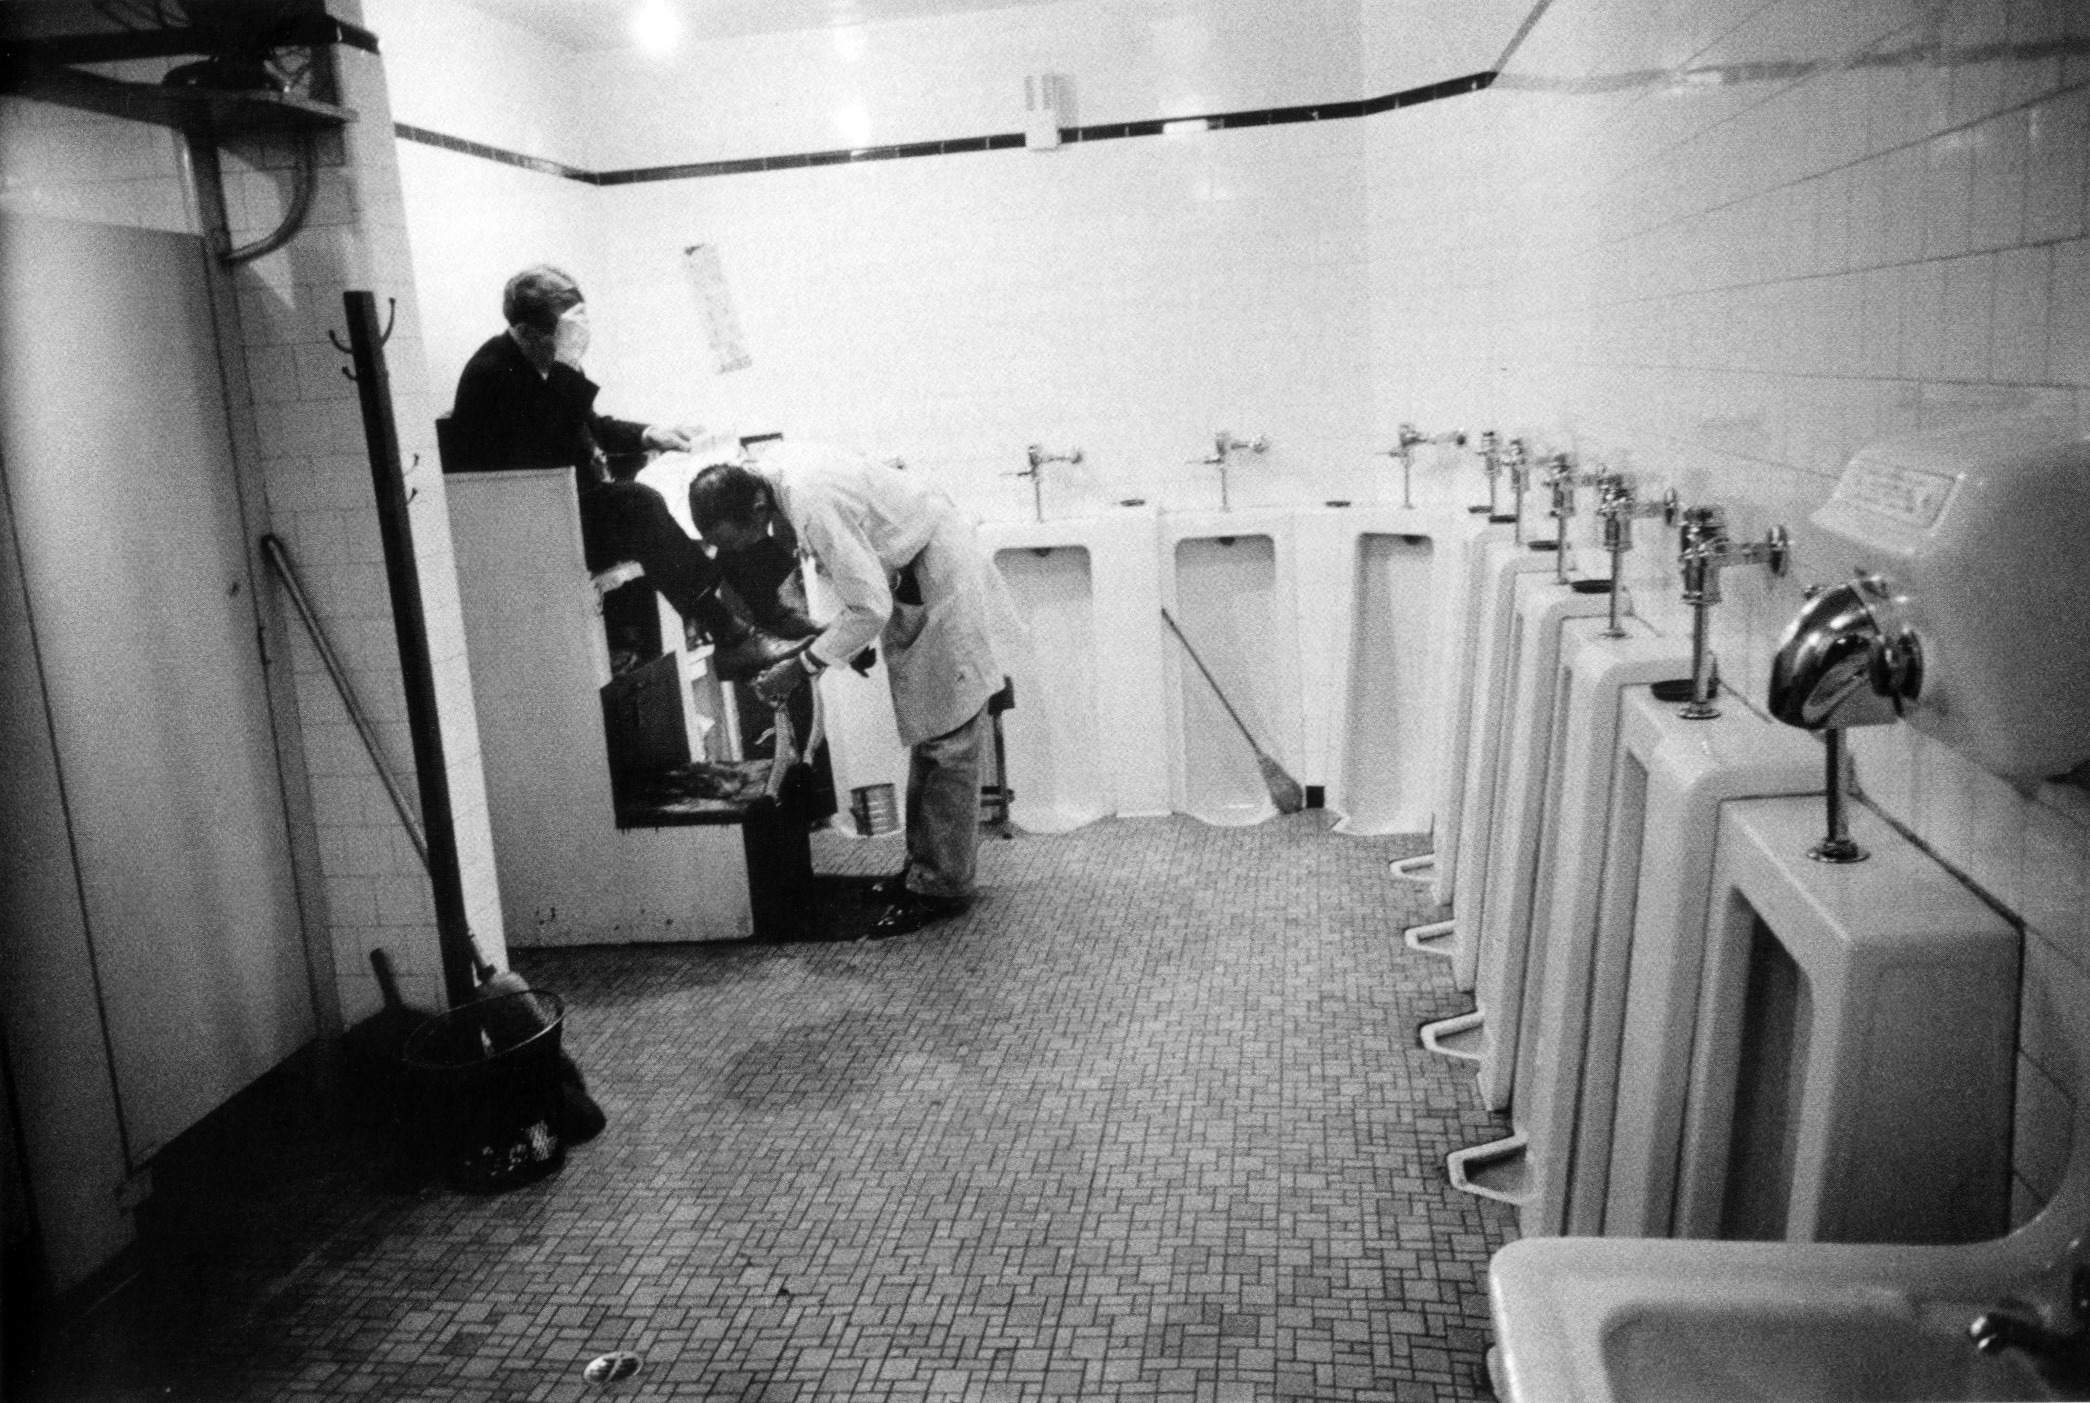 #52 Men's room, railway station - Memphis, TN, 1955